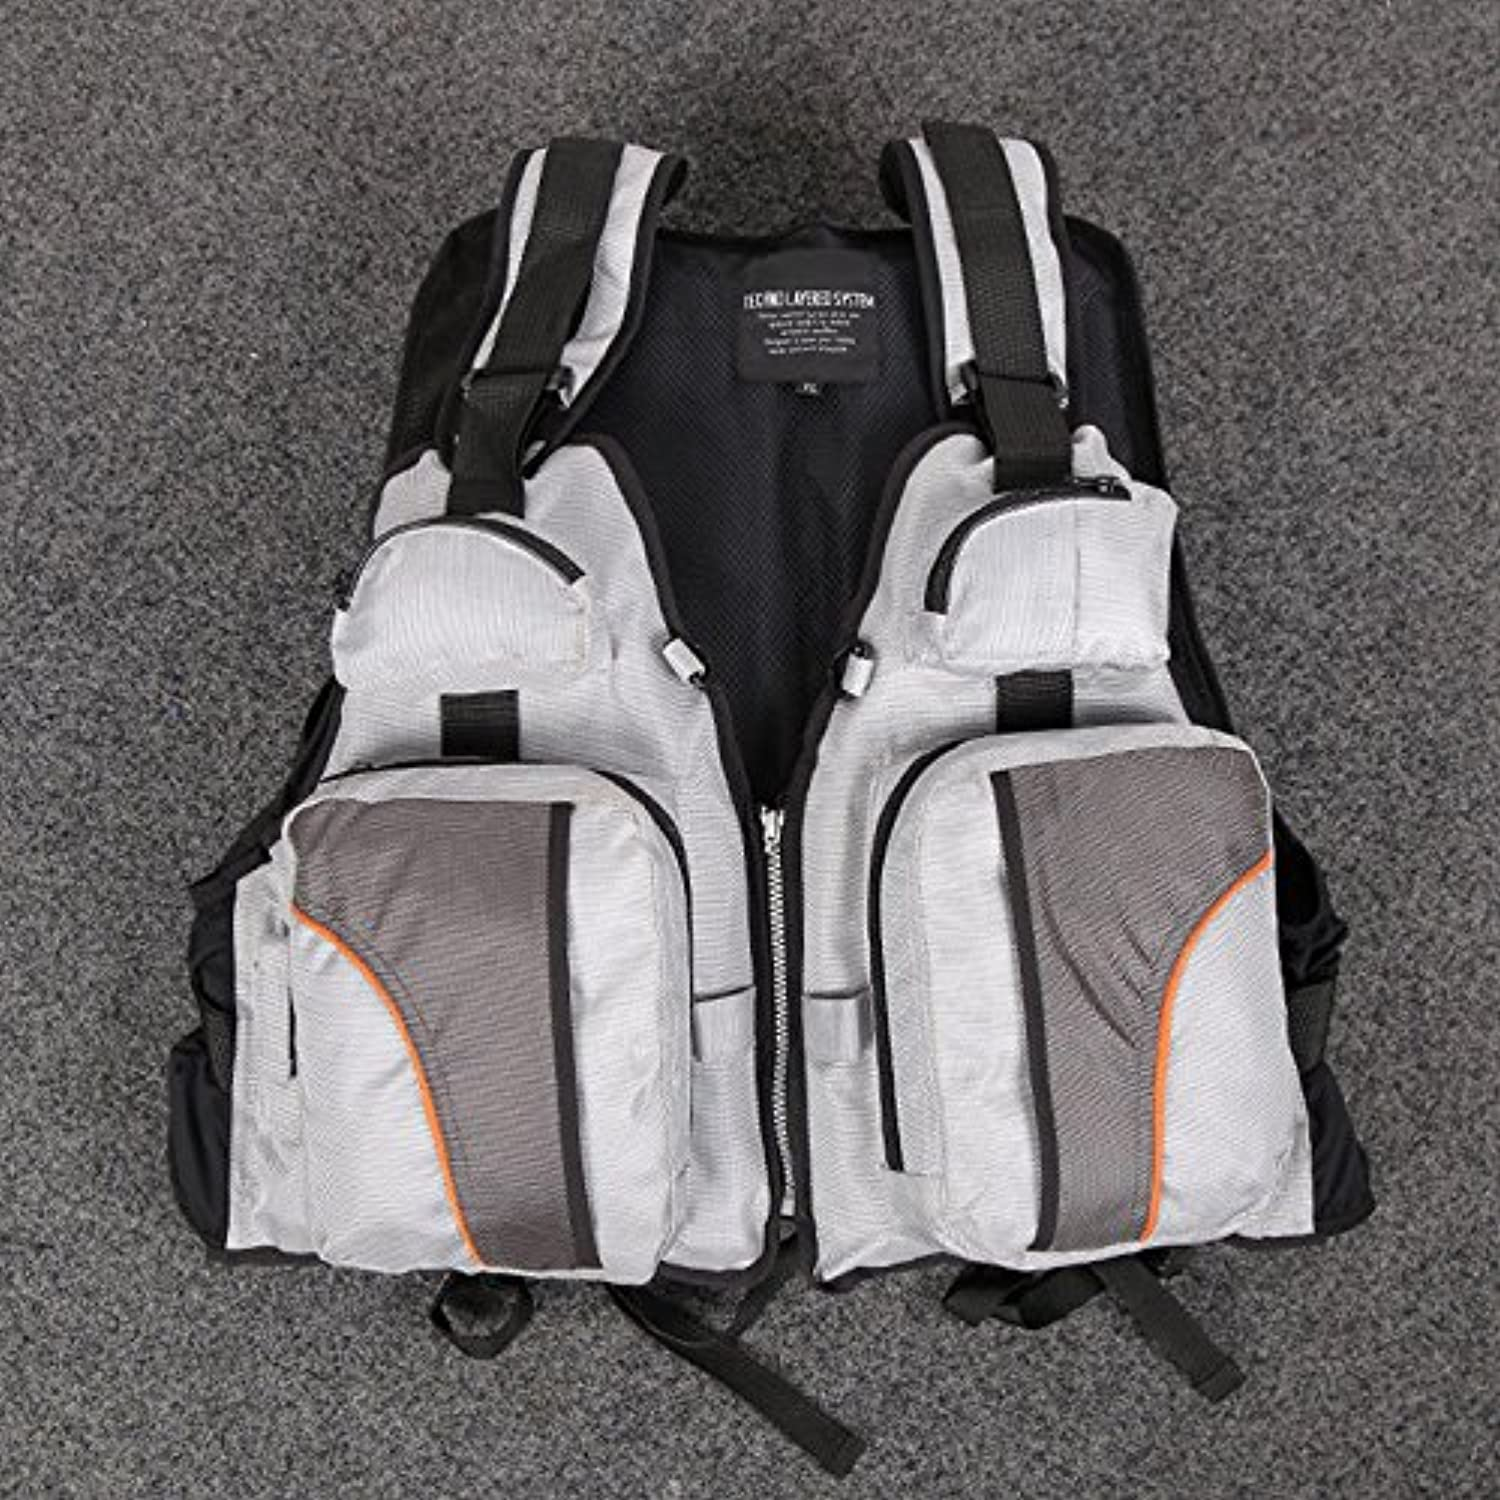 Yiwa Adult Fly Fishing Life Jacket Adjustable Waterproof Breathable Safe Pocket Vest